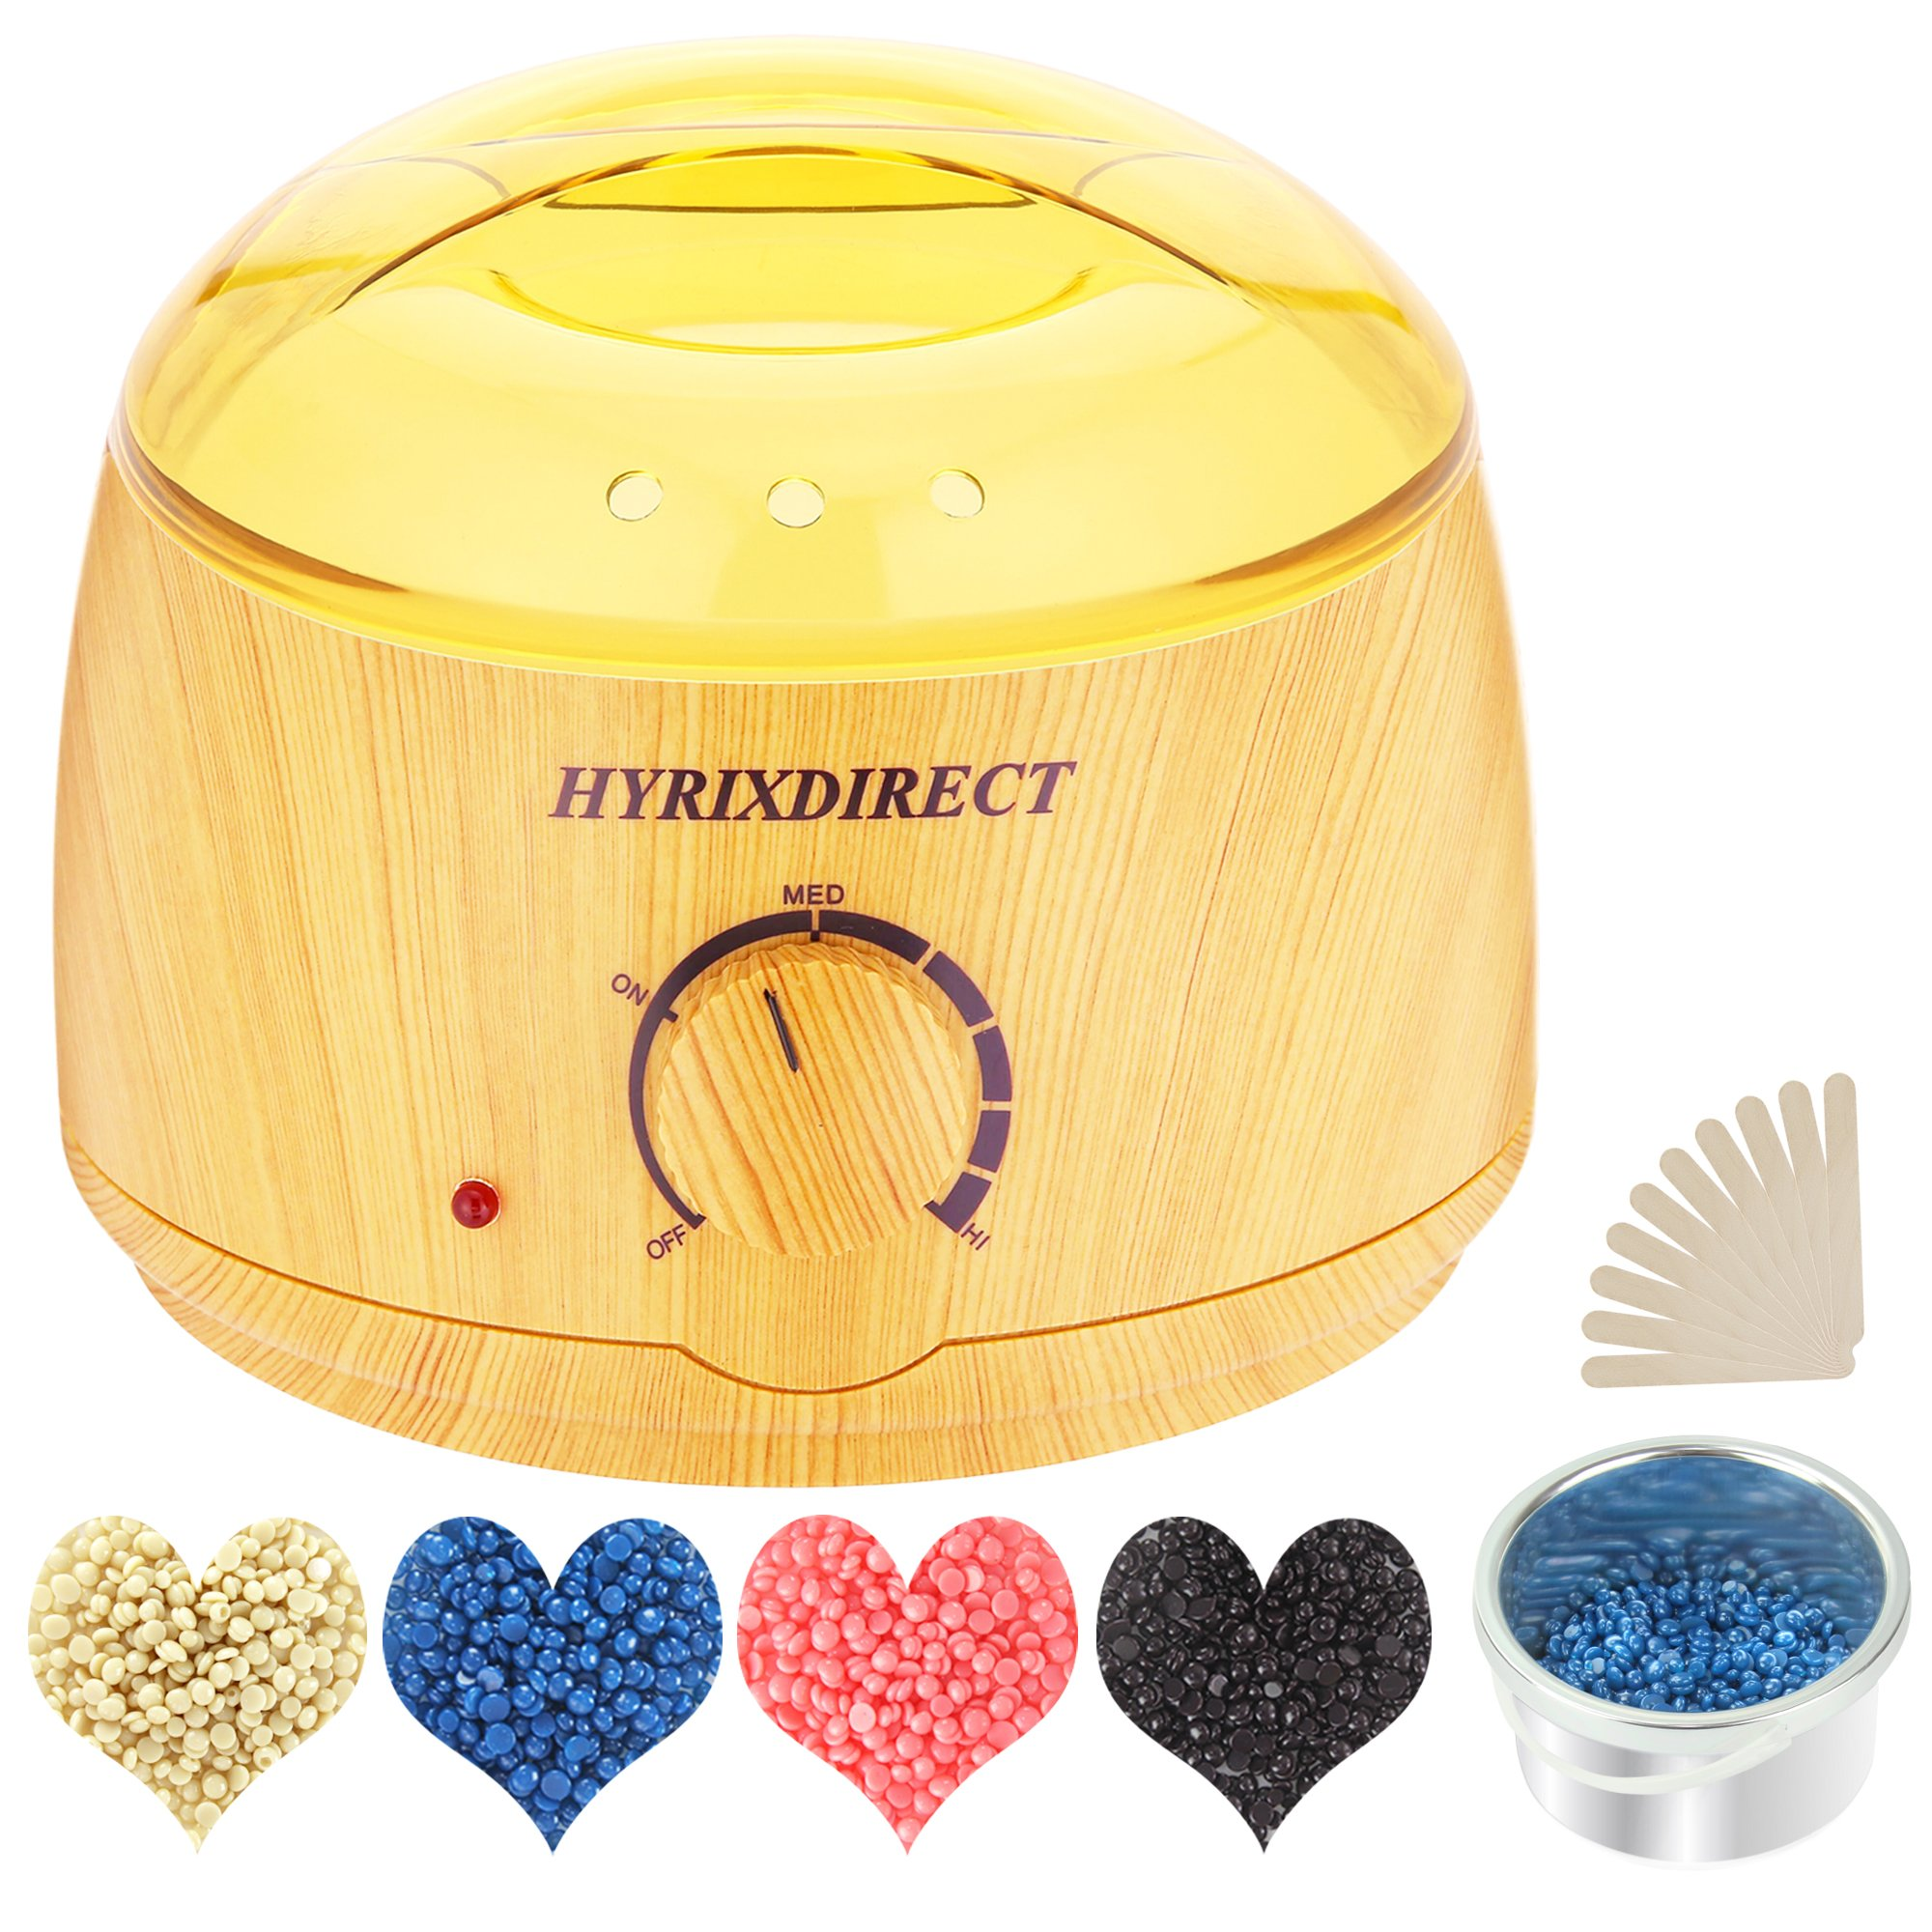 Wax Warmer Hair Removal Waxing Kit Electric Wax Heater with 4 Flavors Hard Wax Beans 10 Wax Applicator Sticks Home Depilatory Beauty Machine for Arm Leg Face Bikini Wood Style